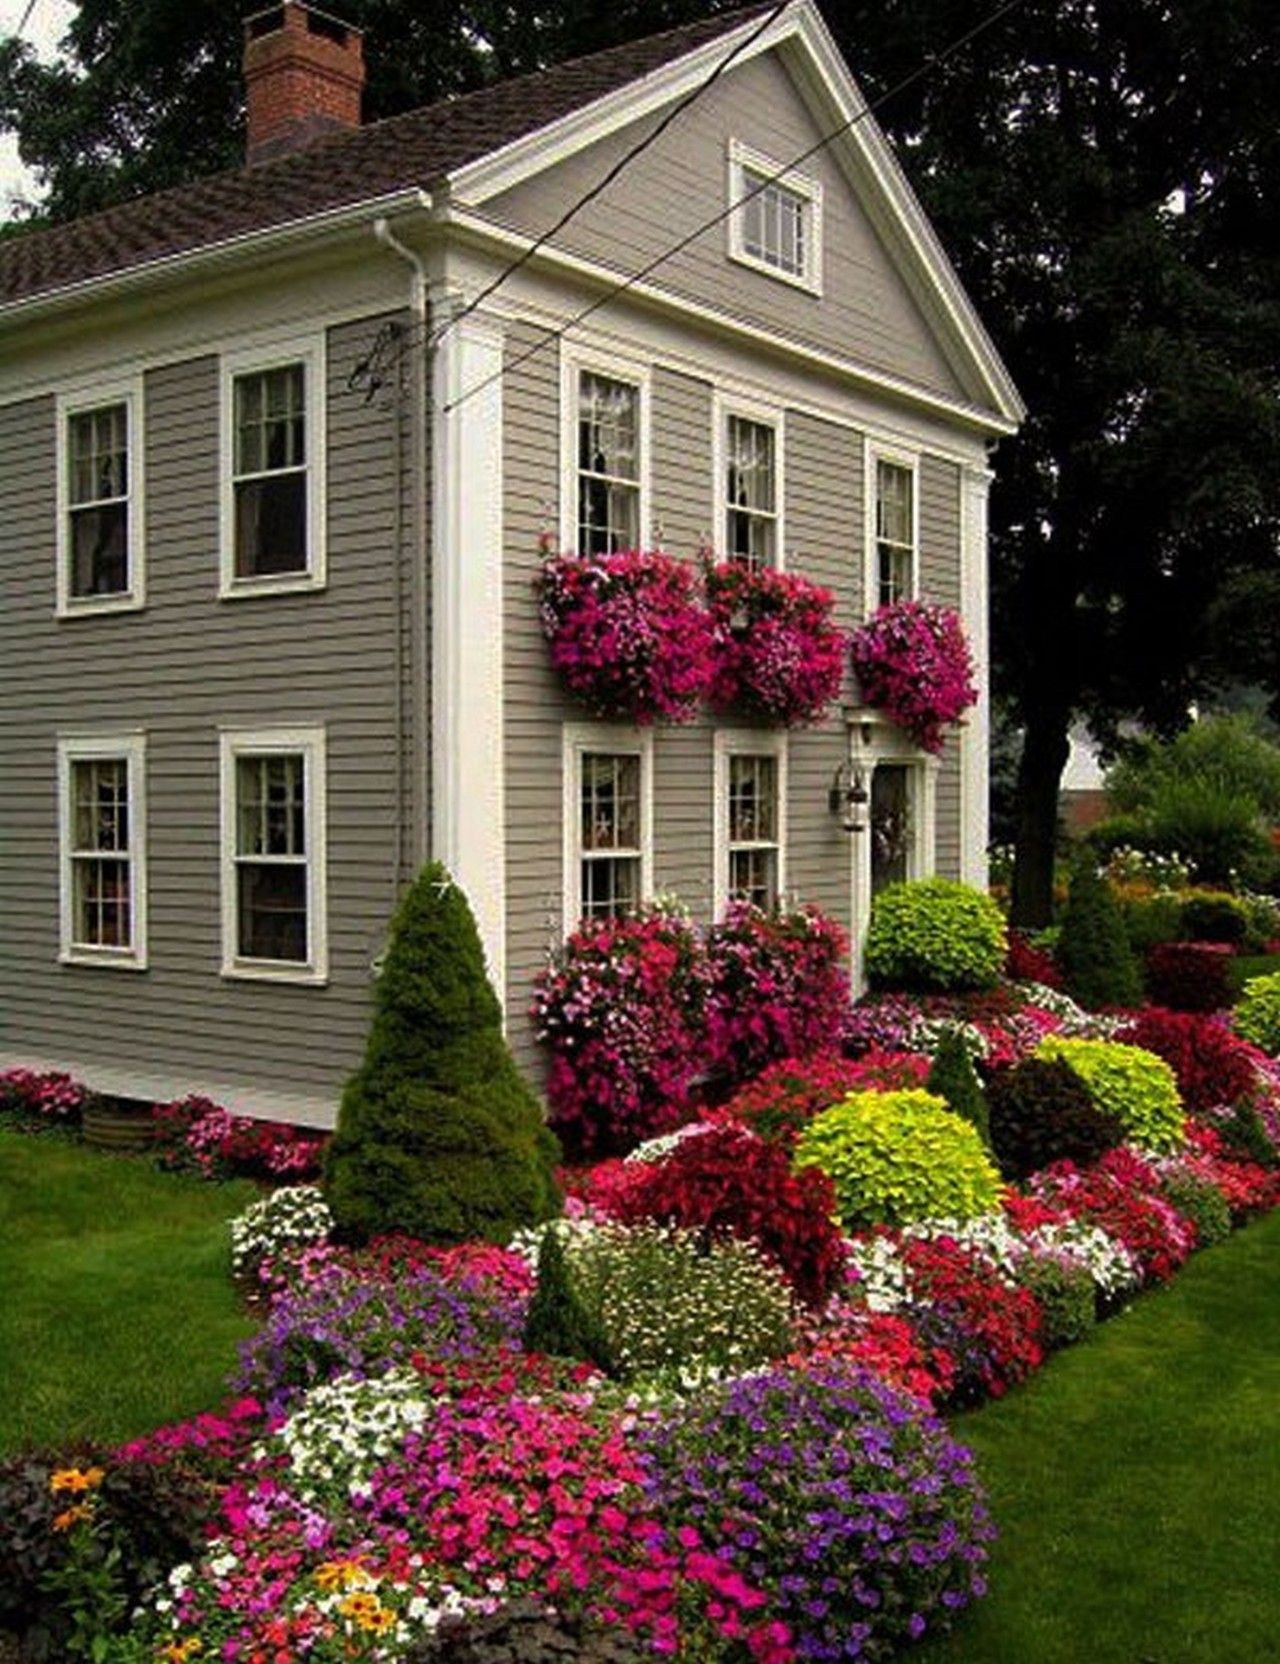 Awesome landscaping ideas for front yards composition for Large front garden ideas